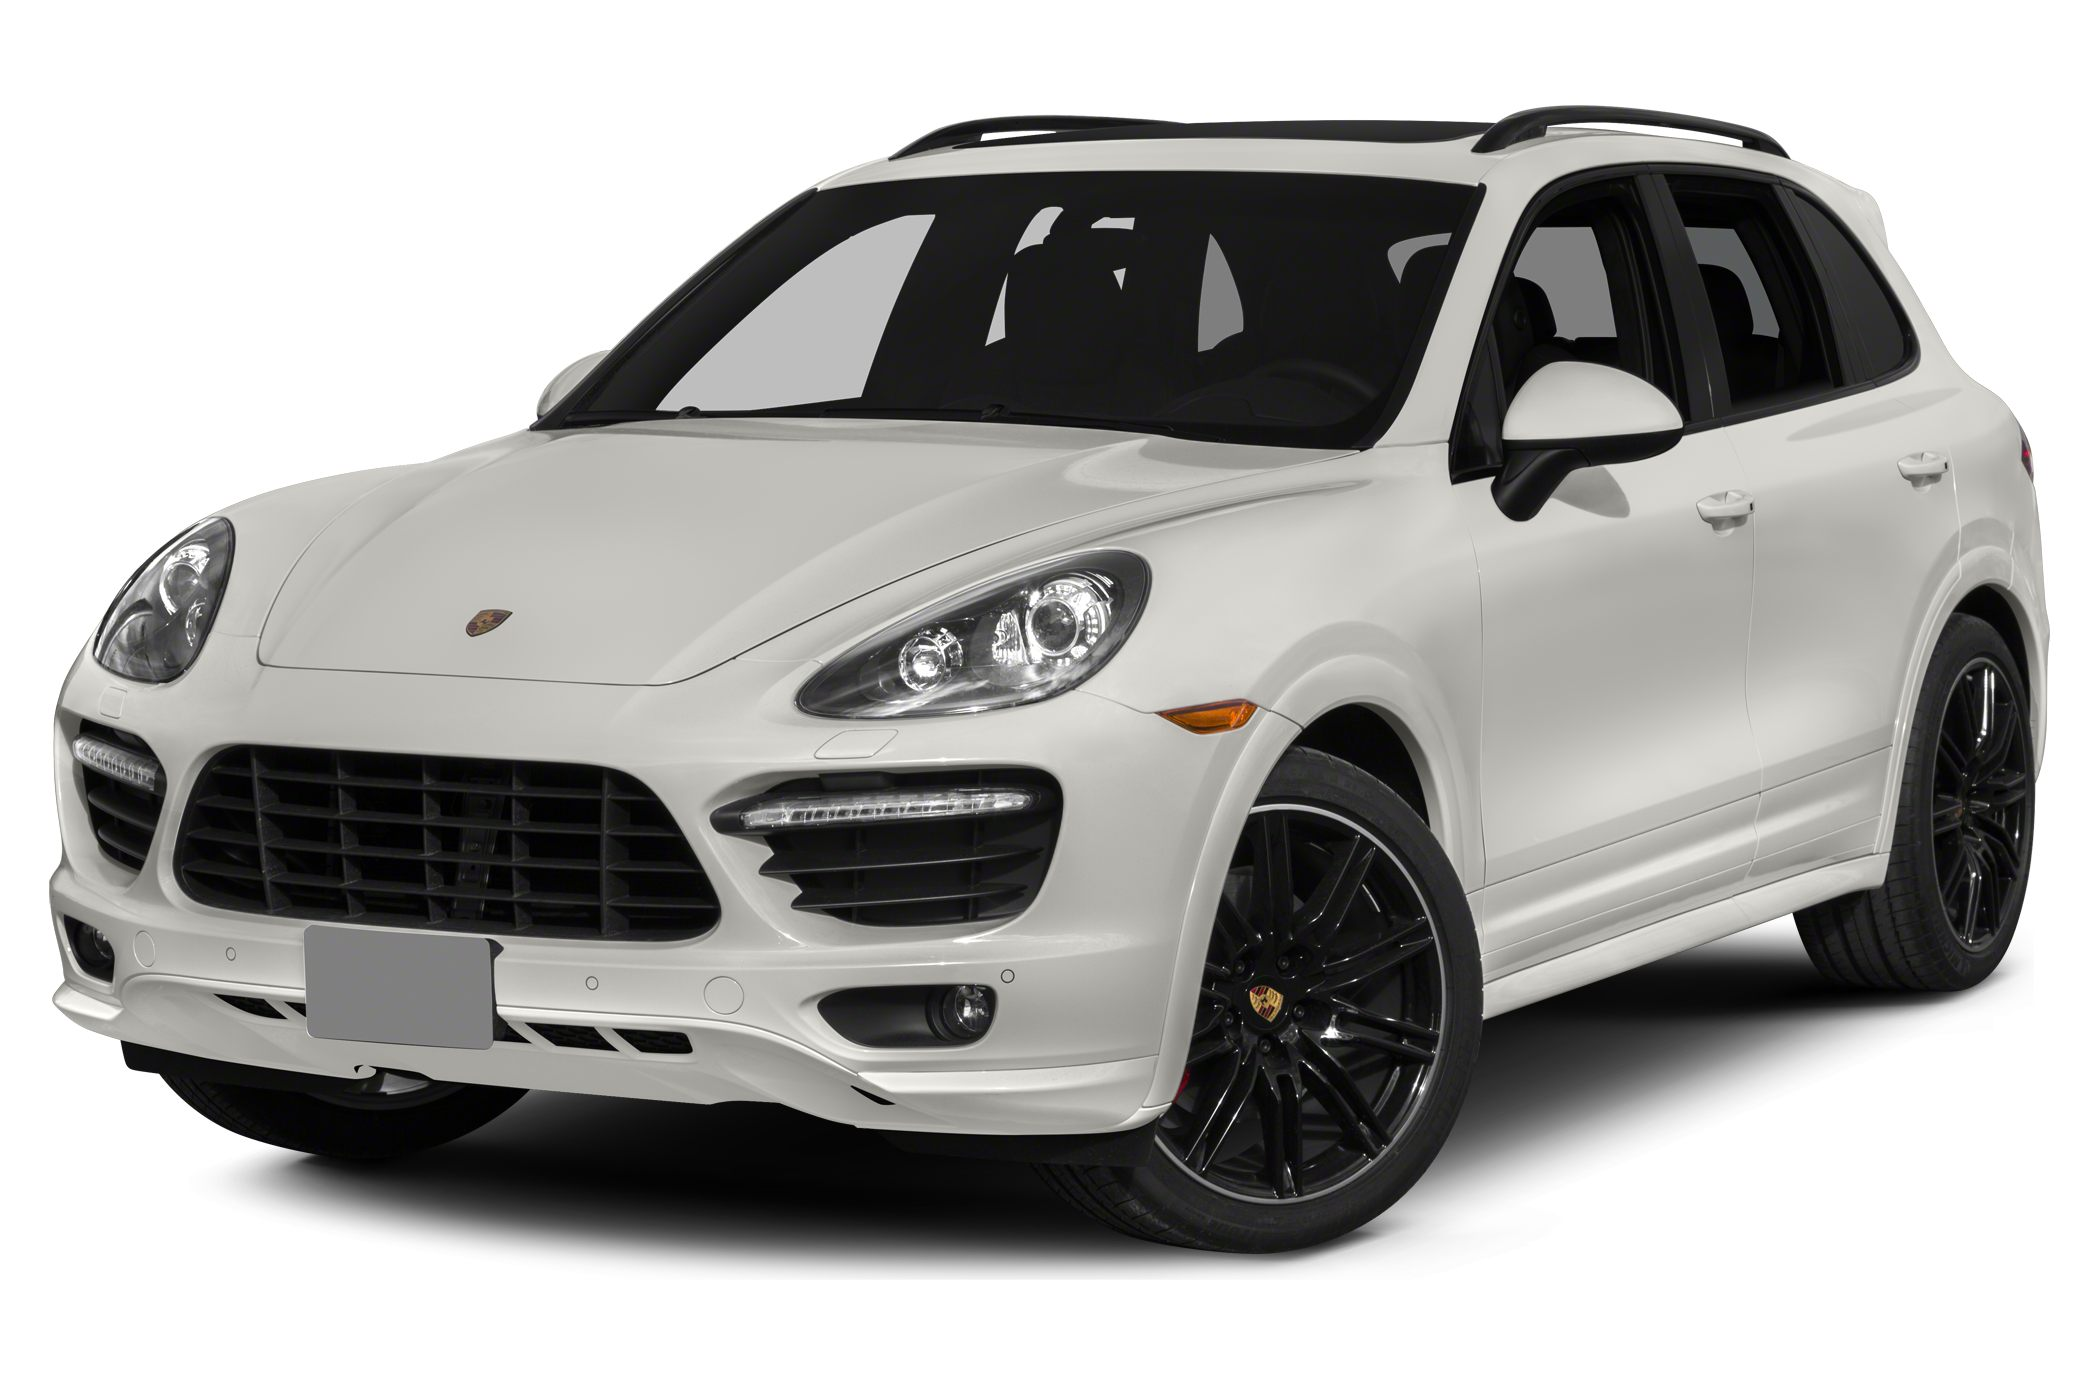 2014 Porsche Cayenne Gts 4dr All Wheel Drive Specs And Prices